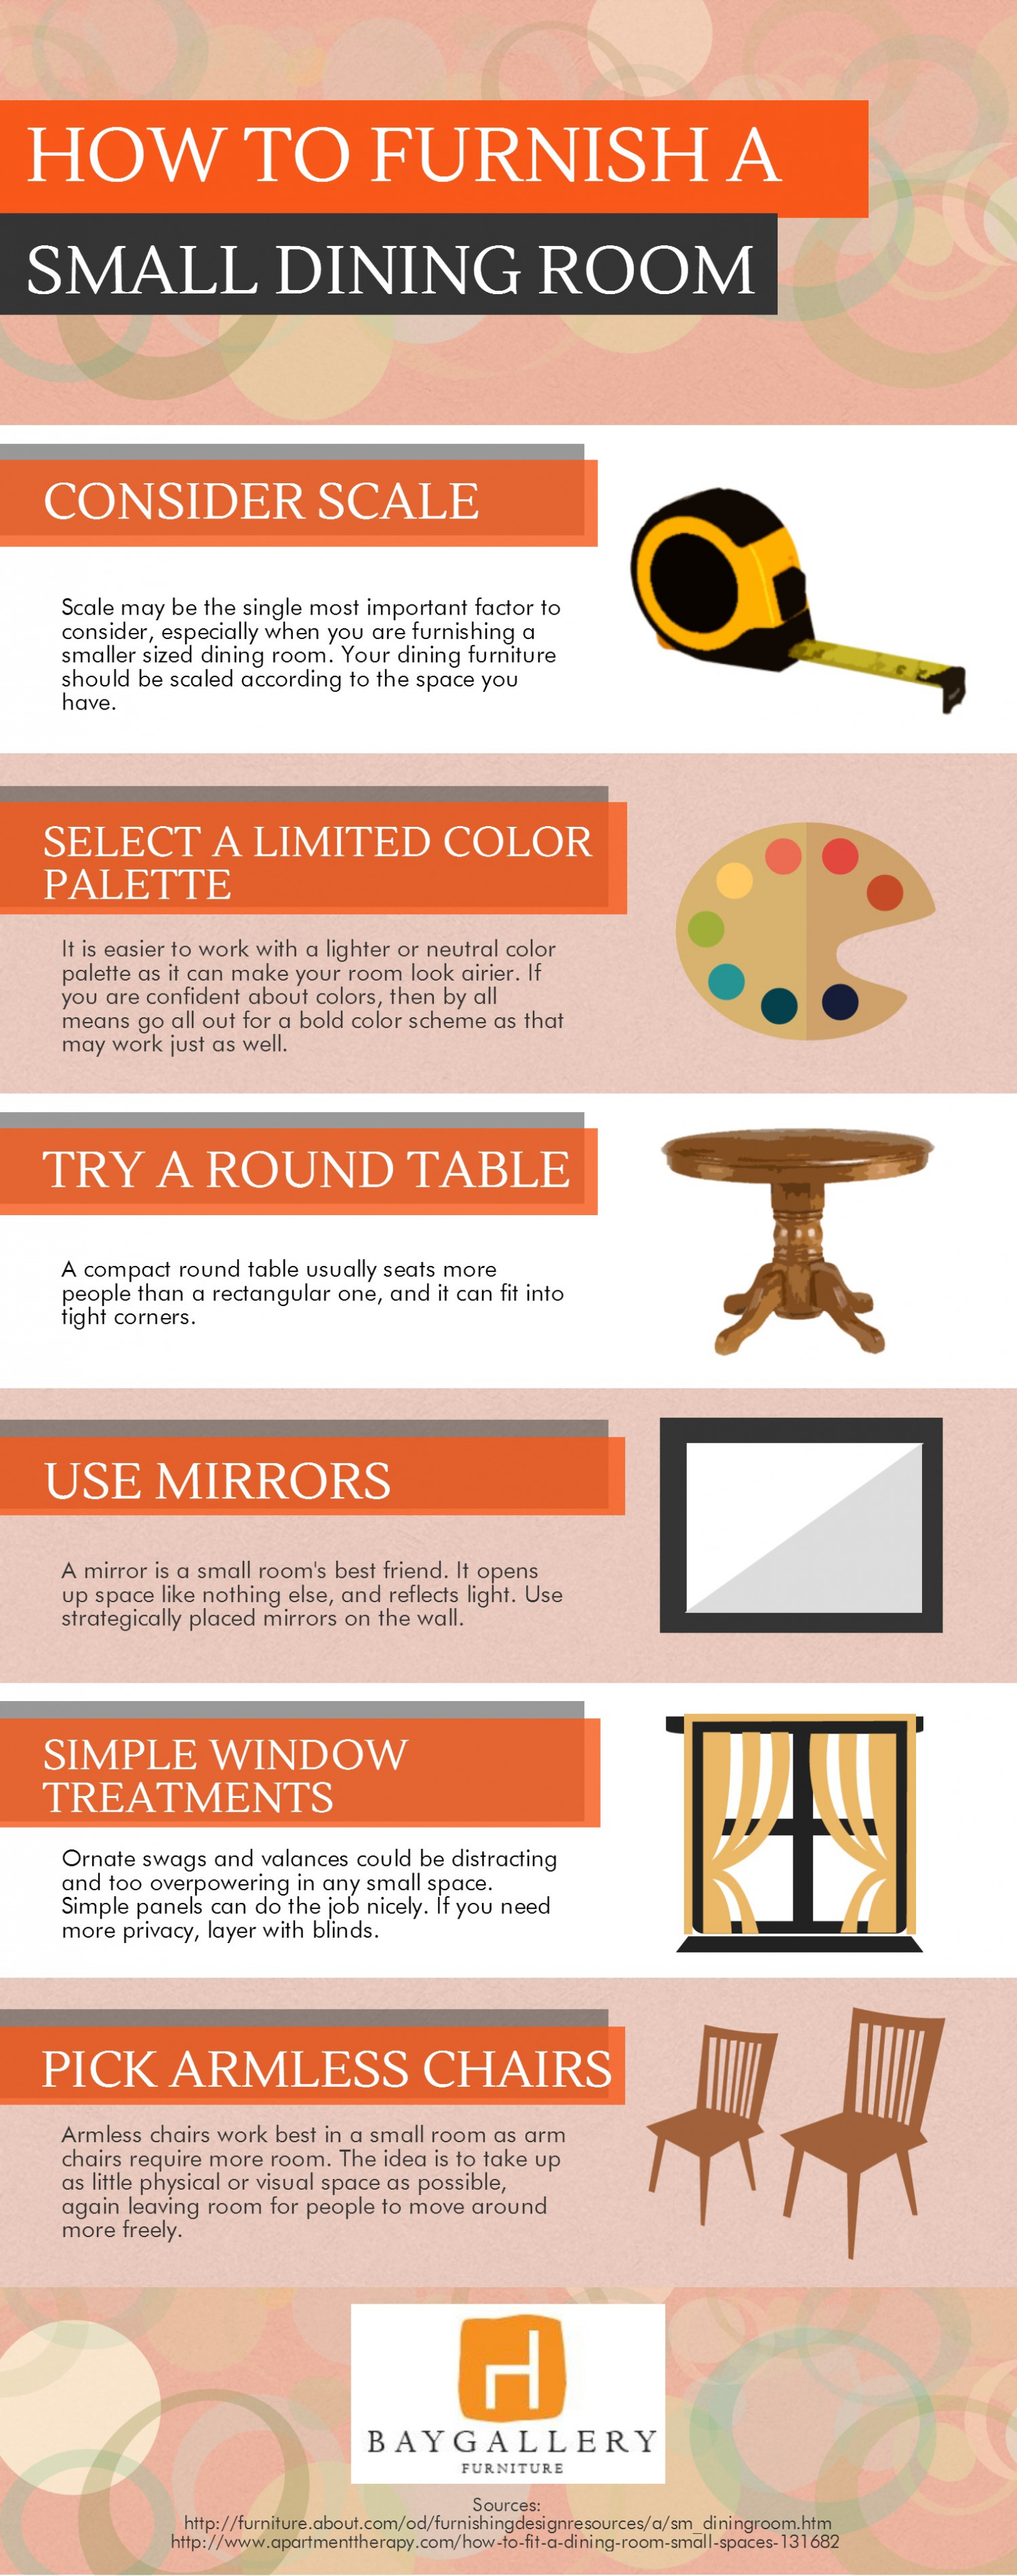 How To Furnish House With Modern Furniture: How To Furnish A Small Dining Room